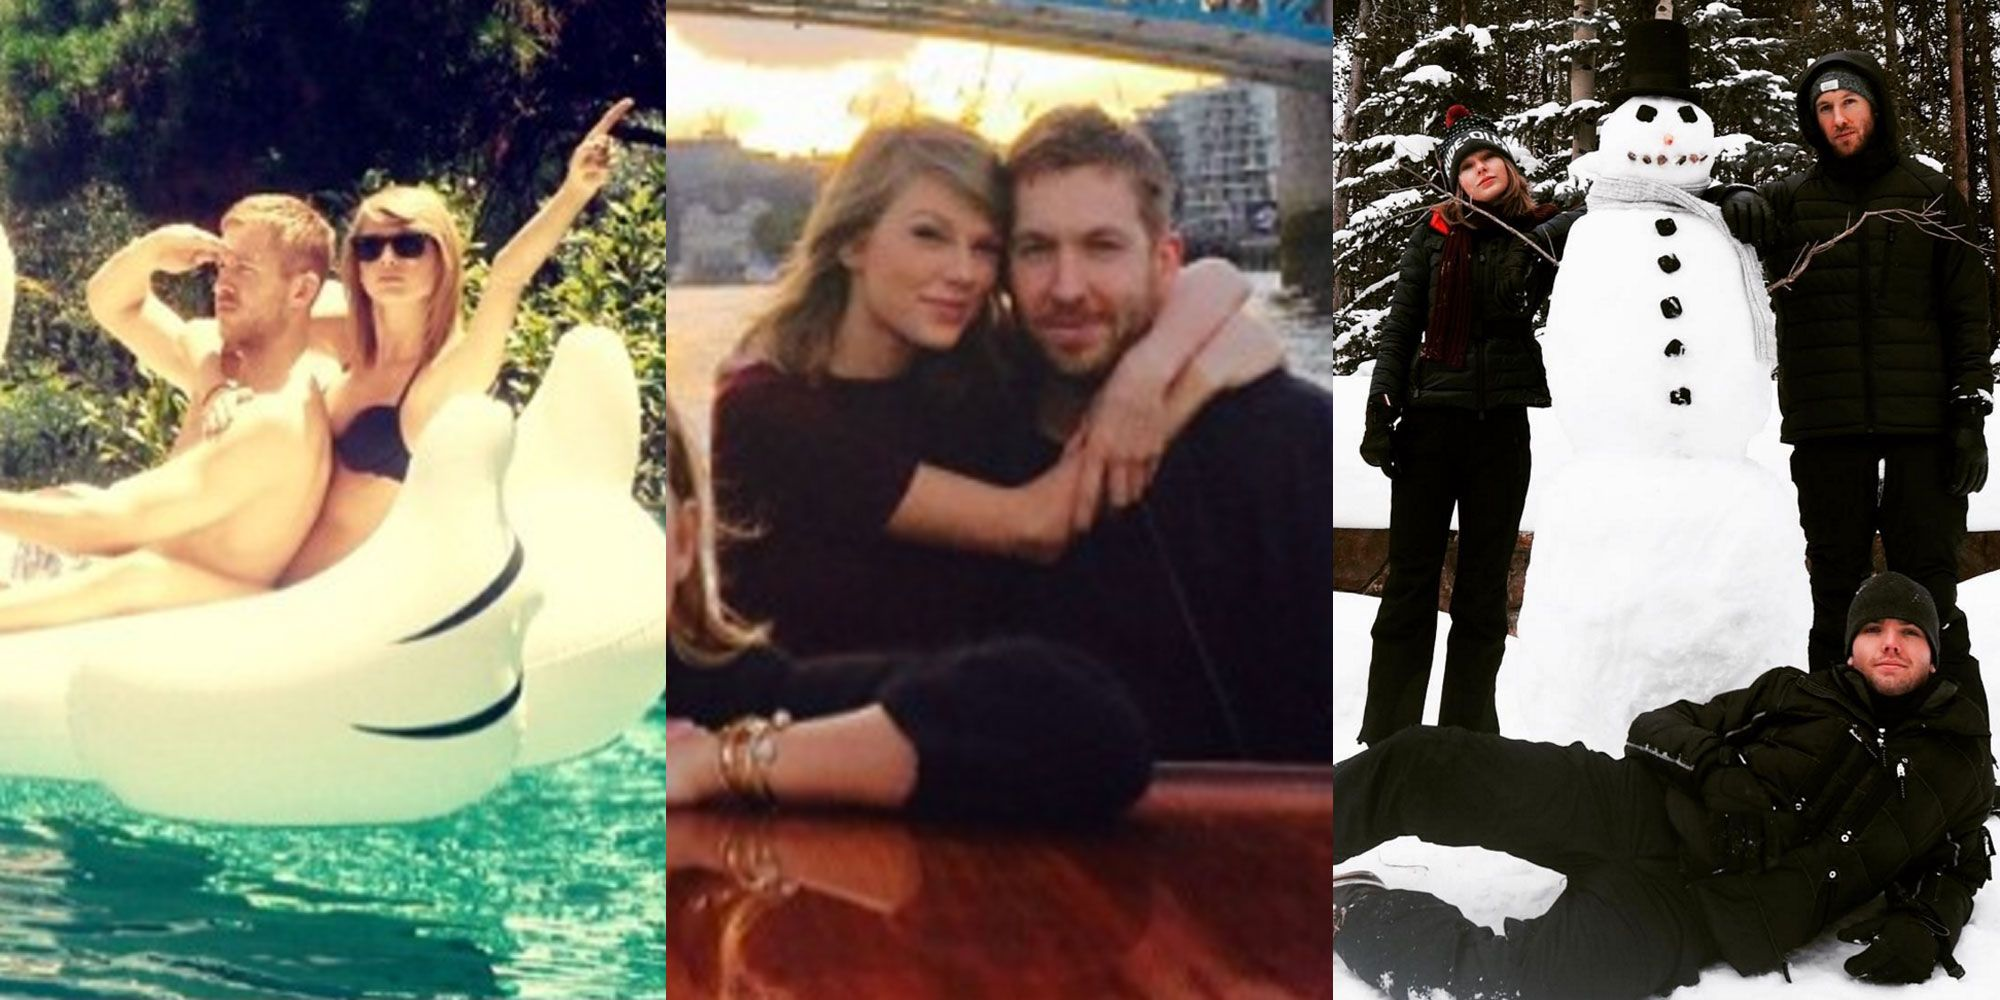 Taylor Swift And Calvin Harris S Relationship Instagrams History Of Taylor Swift And Calvin Harris S Relationship